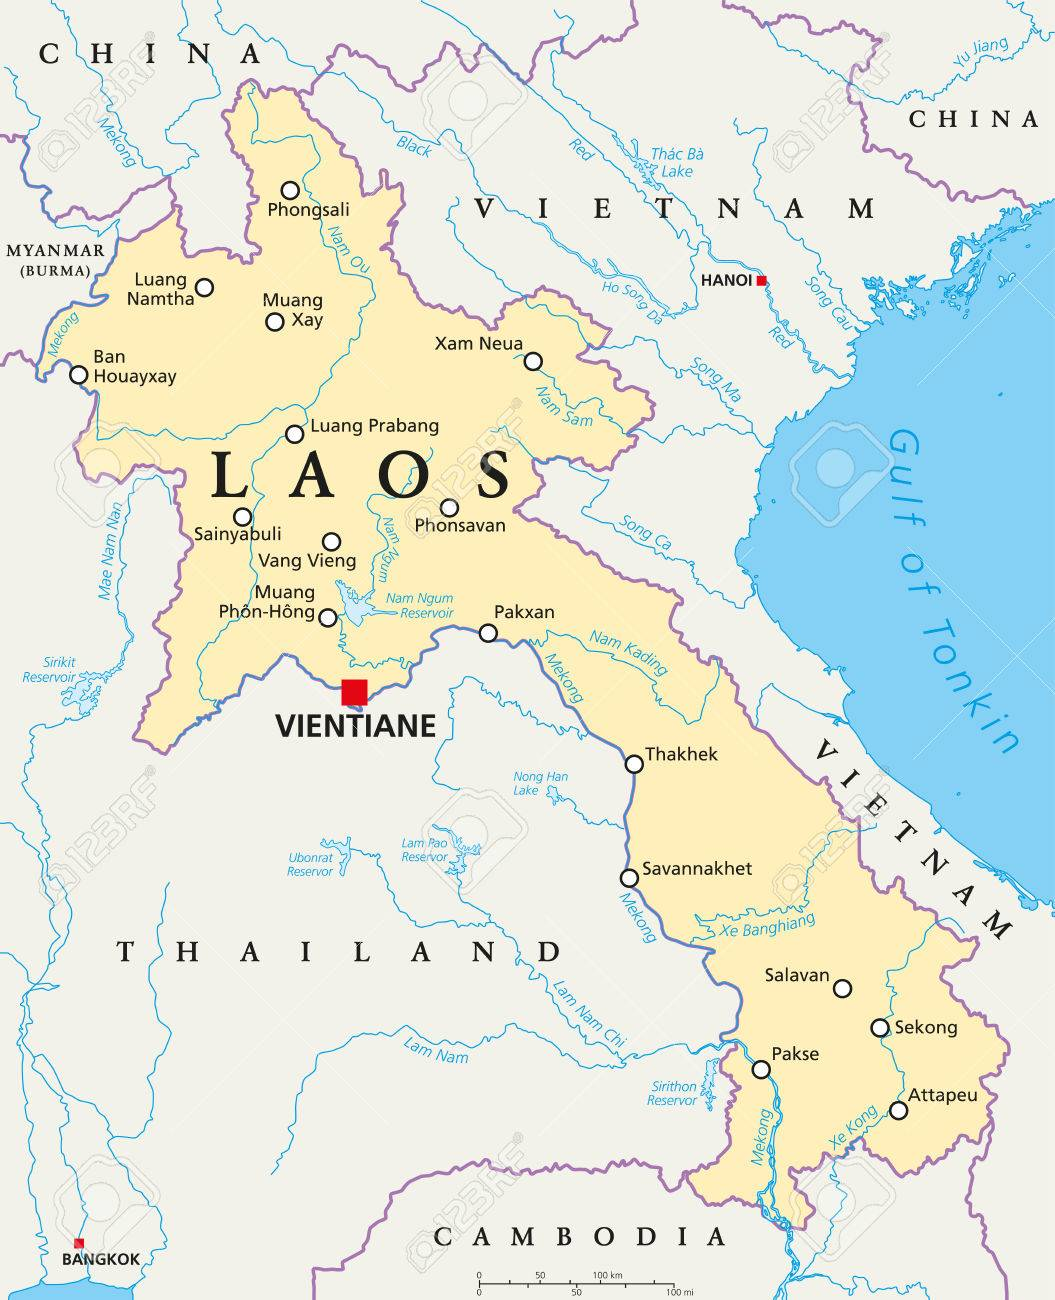 Laos Political Map With Capital Vientiane National Borders – Southeast Asia Map Political